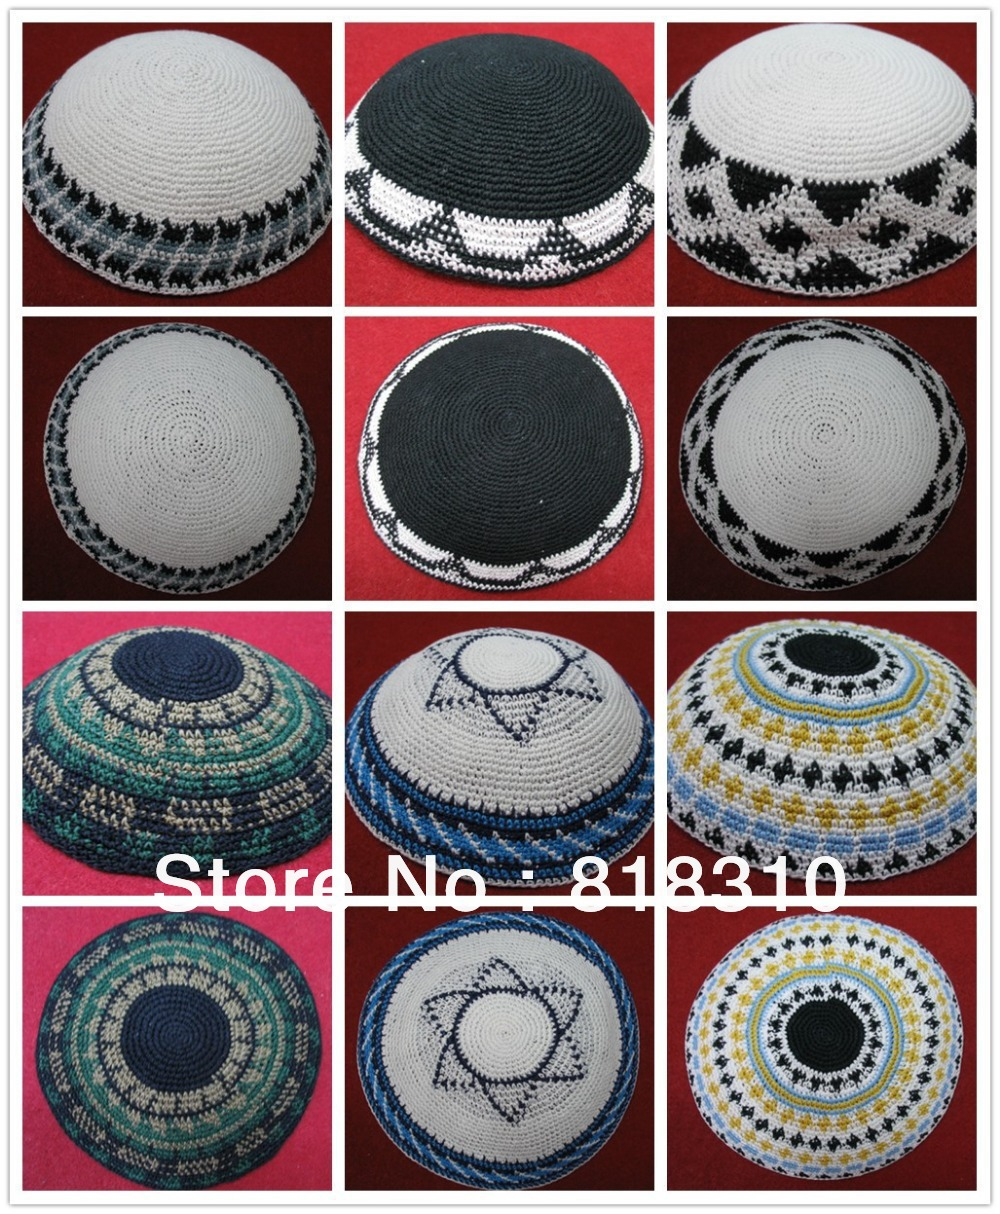 HIGH QUALITY HANDMADE KNITTED YARMULKE KIPPAH 8 STYLES AVAILABE-in ...